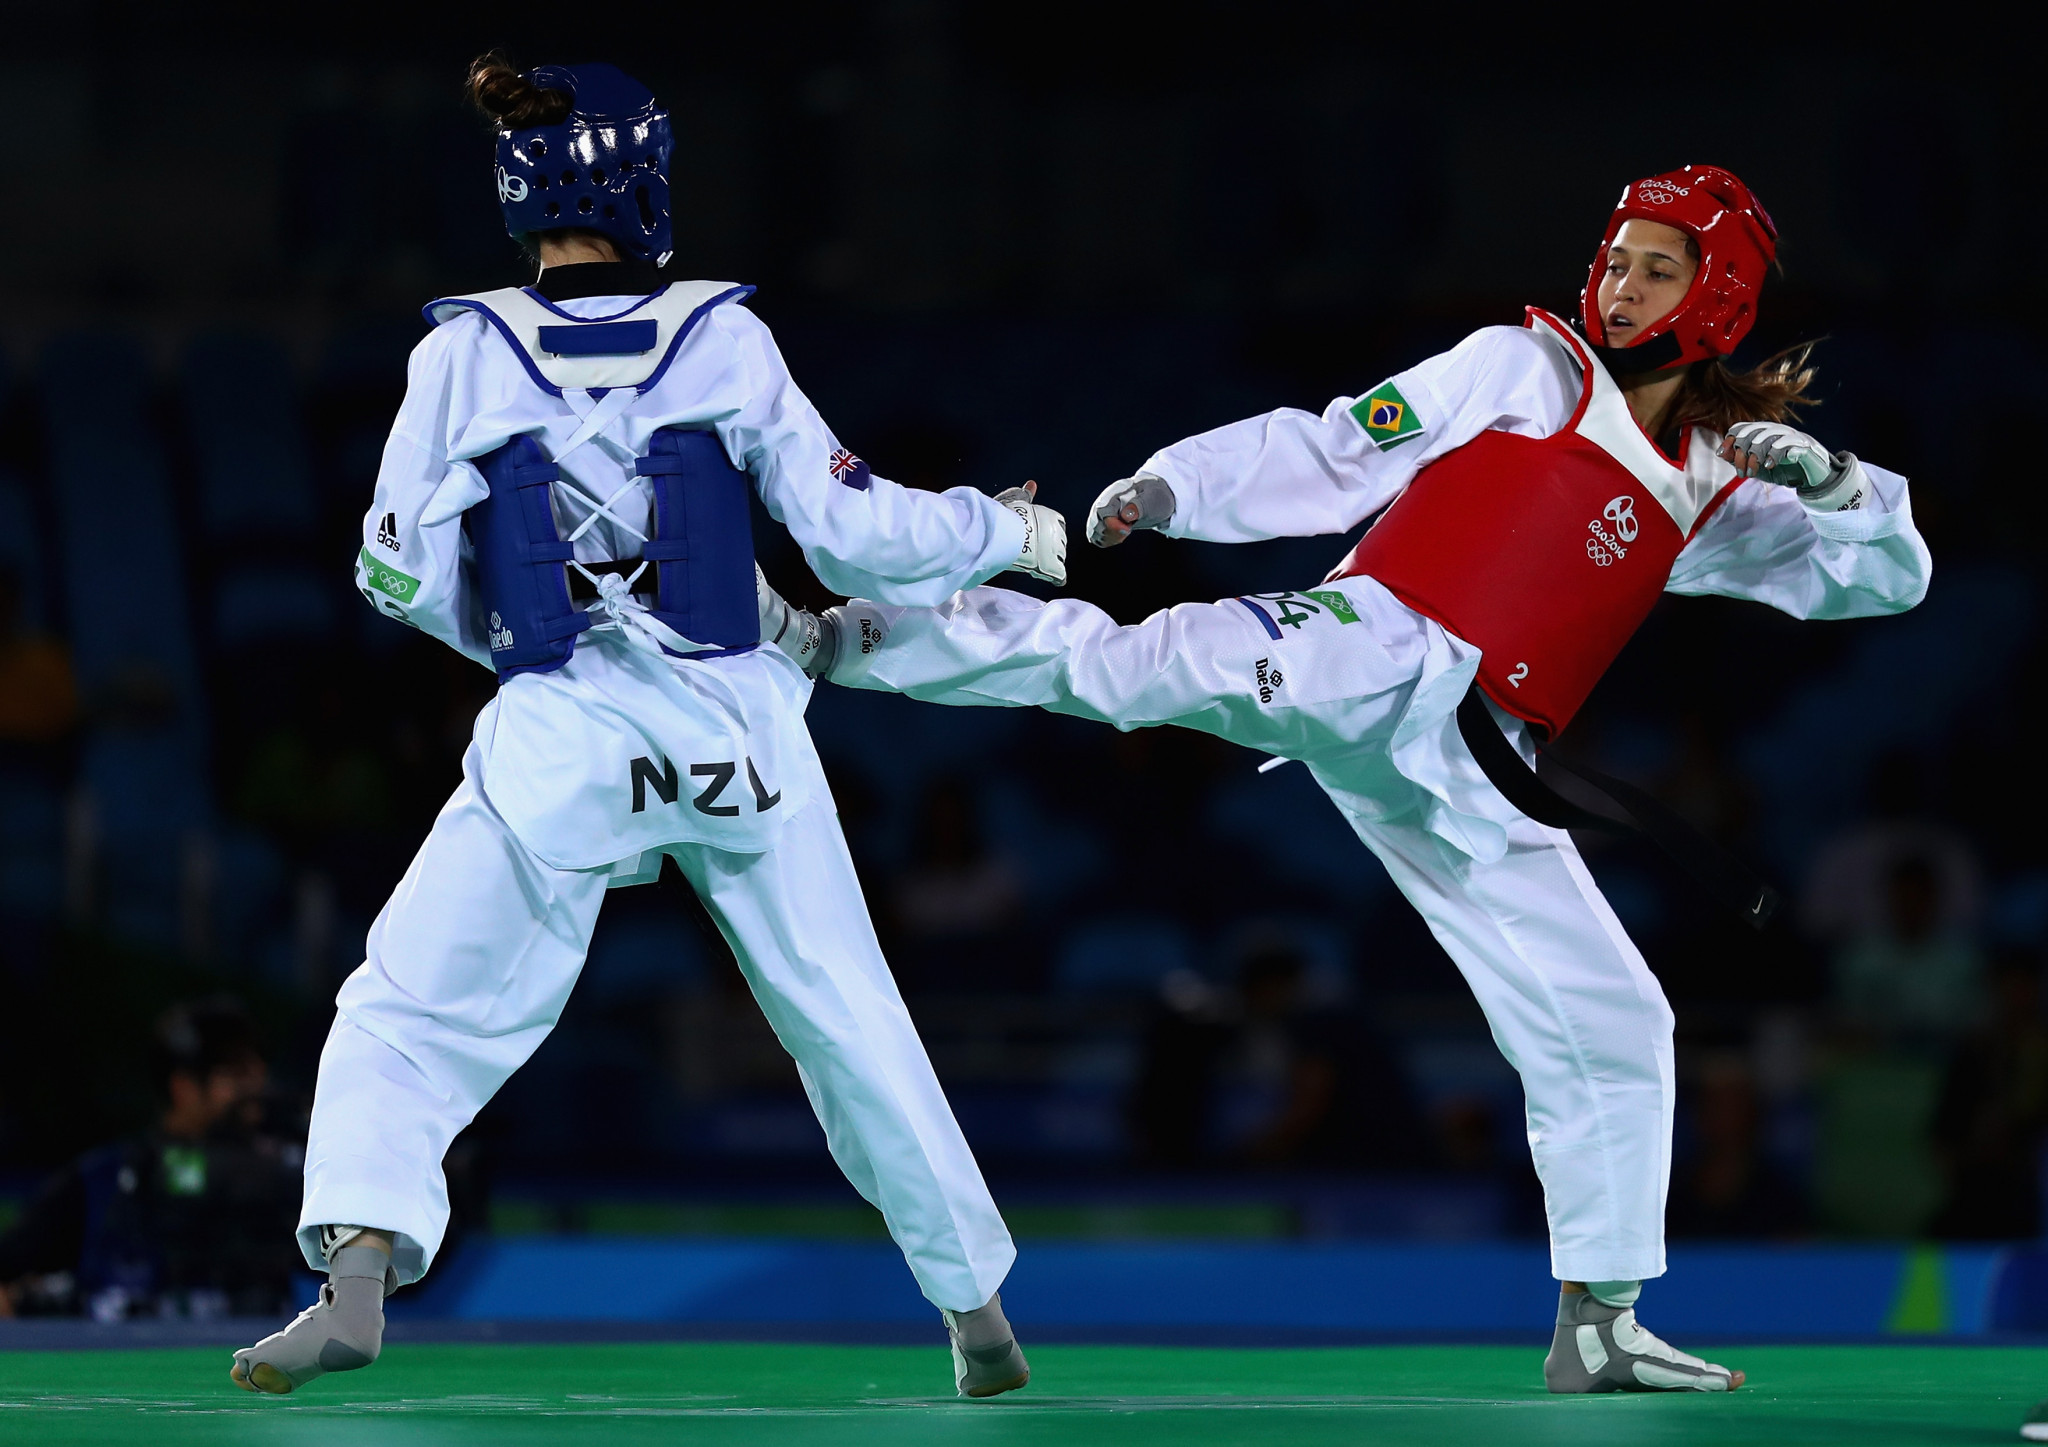 World Taekwondo release statement clarifying New Zealand situation